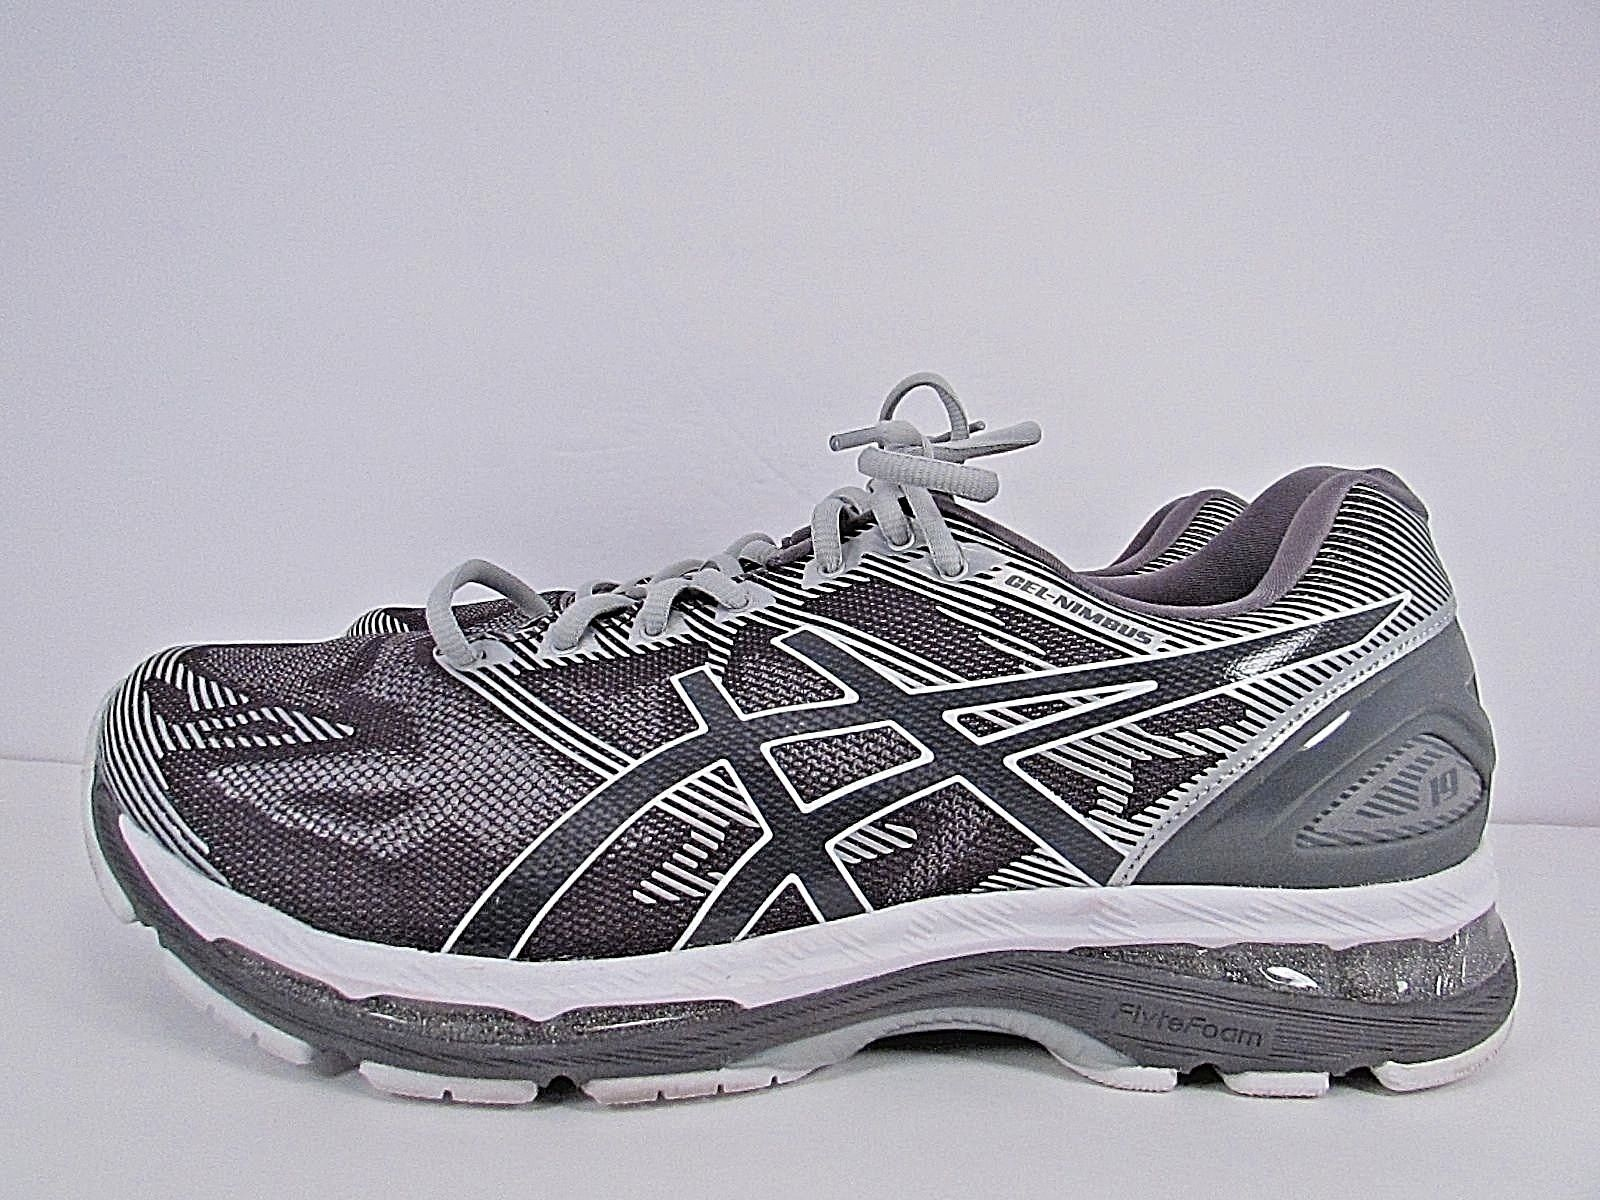 huge selection of 7ca0a bcfb9 MENS ASICS GEL NIMBUS 19 SIZE 12 (4E) EXTRA WIDE ! WORN ...